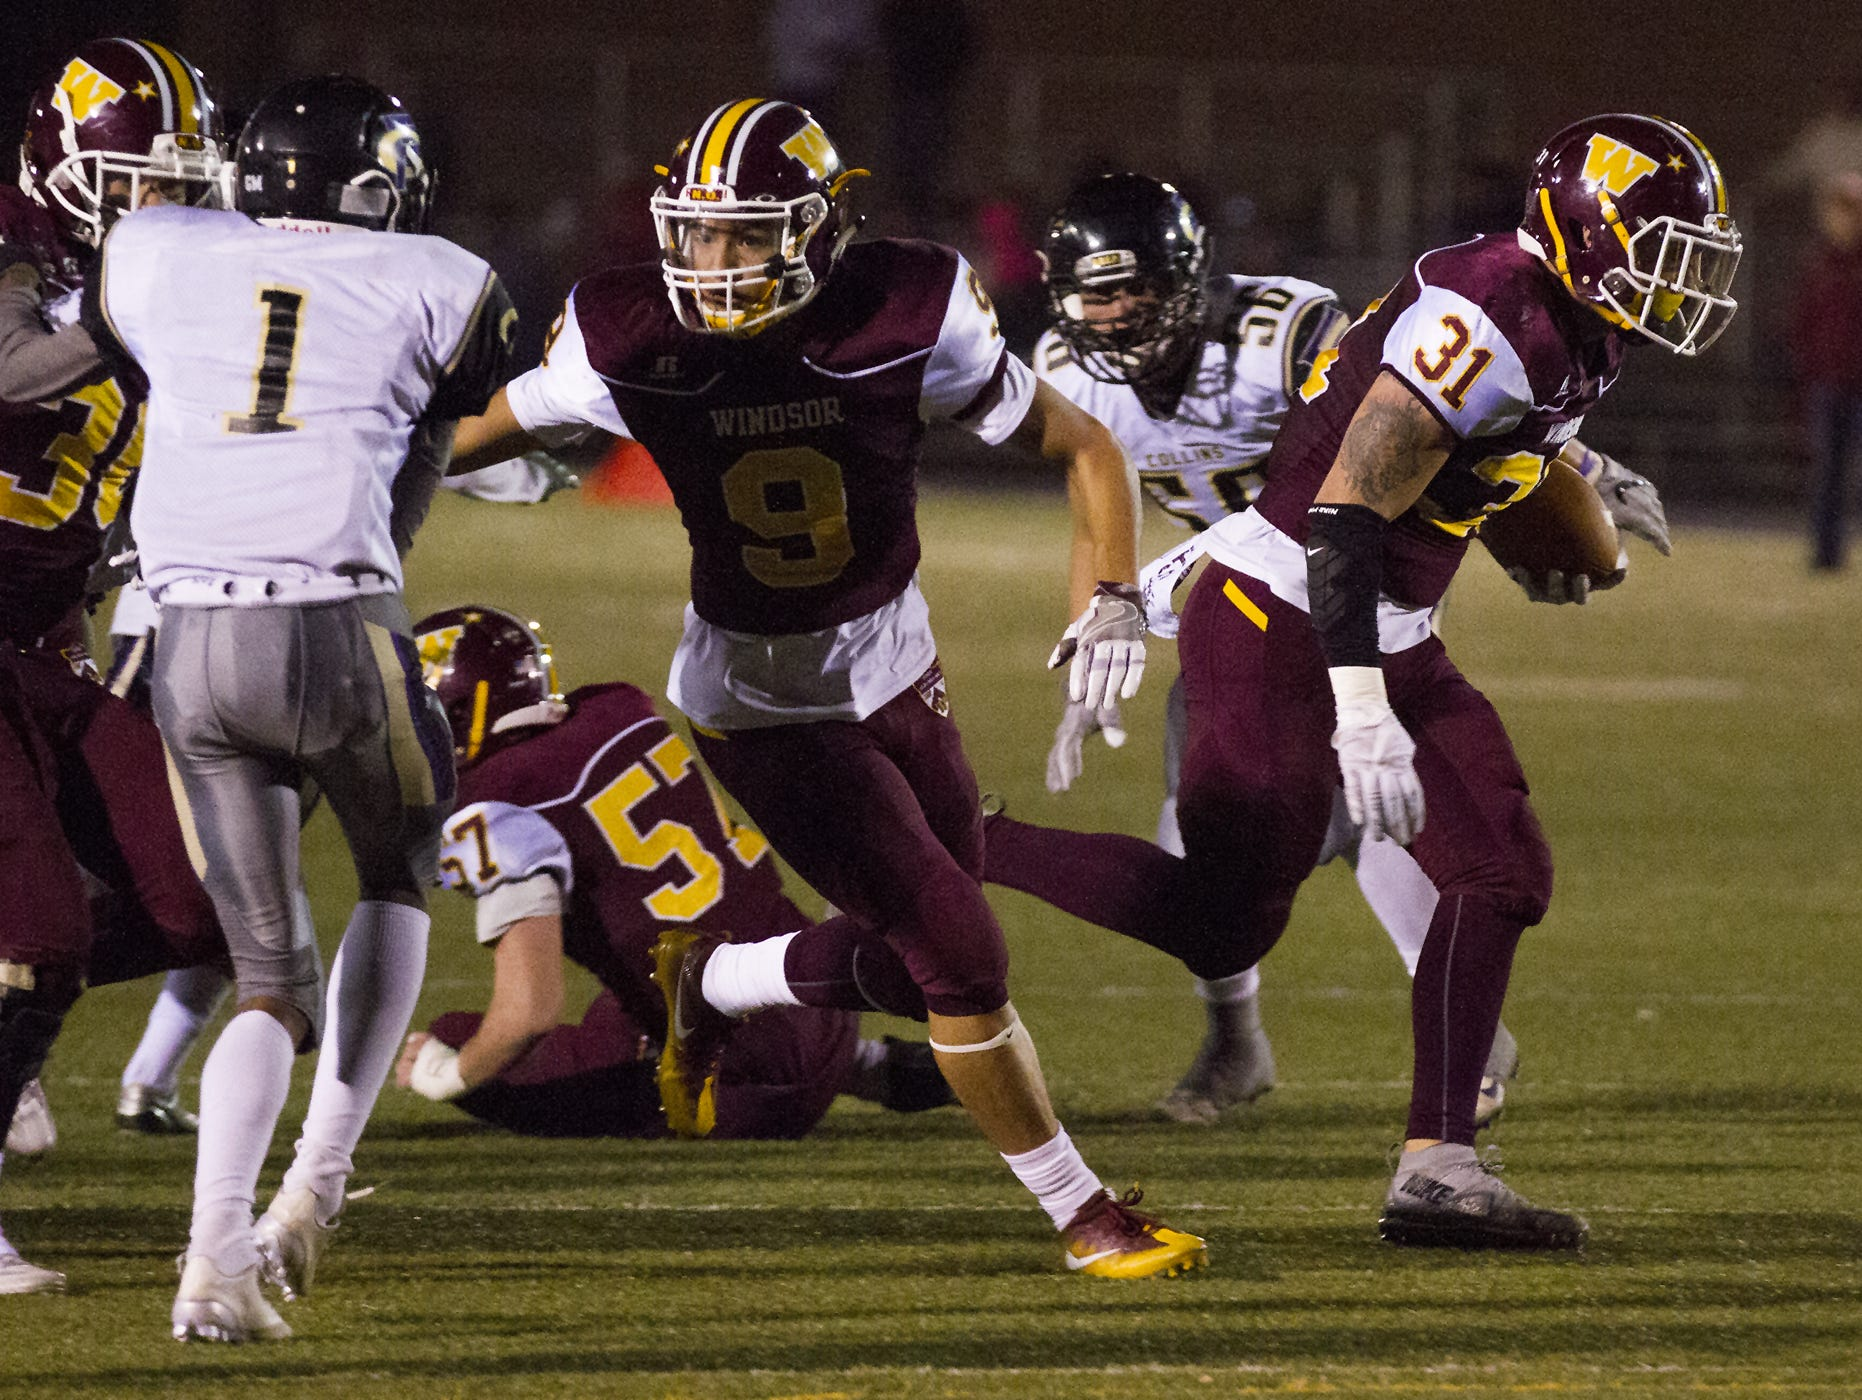 Windsor running back Corte Tapia (31), right, runs from the backfield Friday as teammates Jaedyn Traut (9) and Keller Kretchmer (30) block Fort Collins. The Wizards have qualified for the 4A playoffs to defend their title.